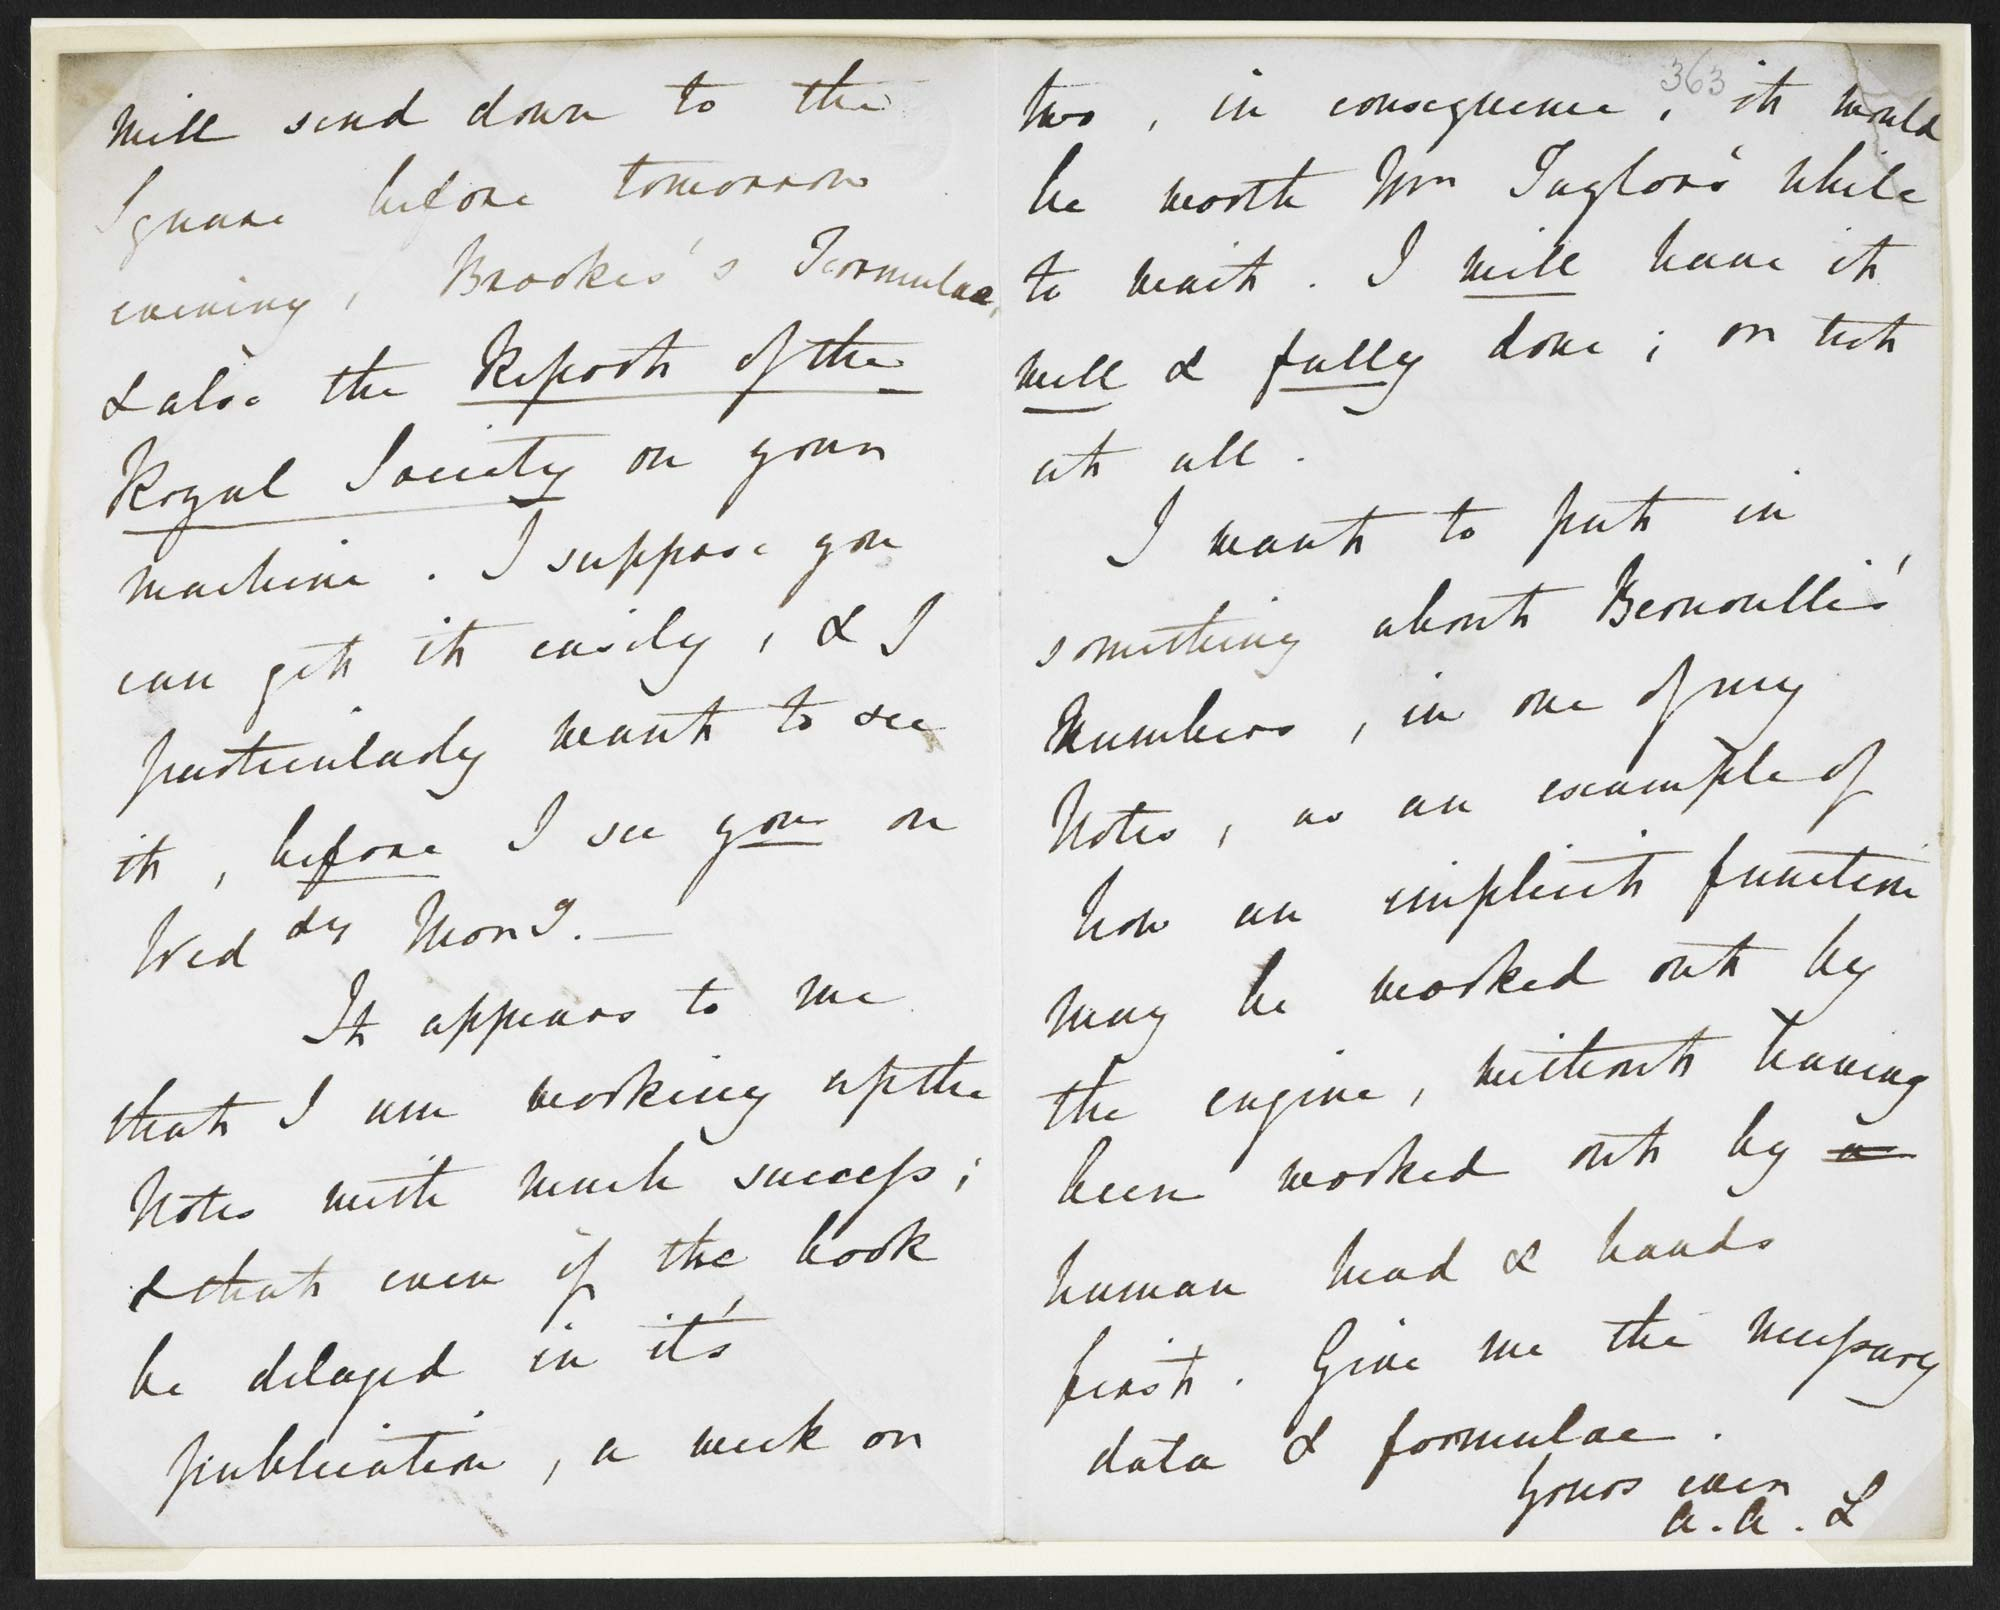 Letter from Ada Lovelace to Charles Babbage, 10 July 1843